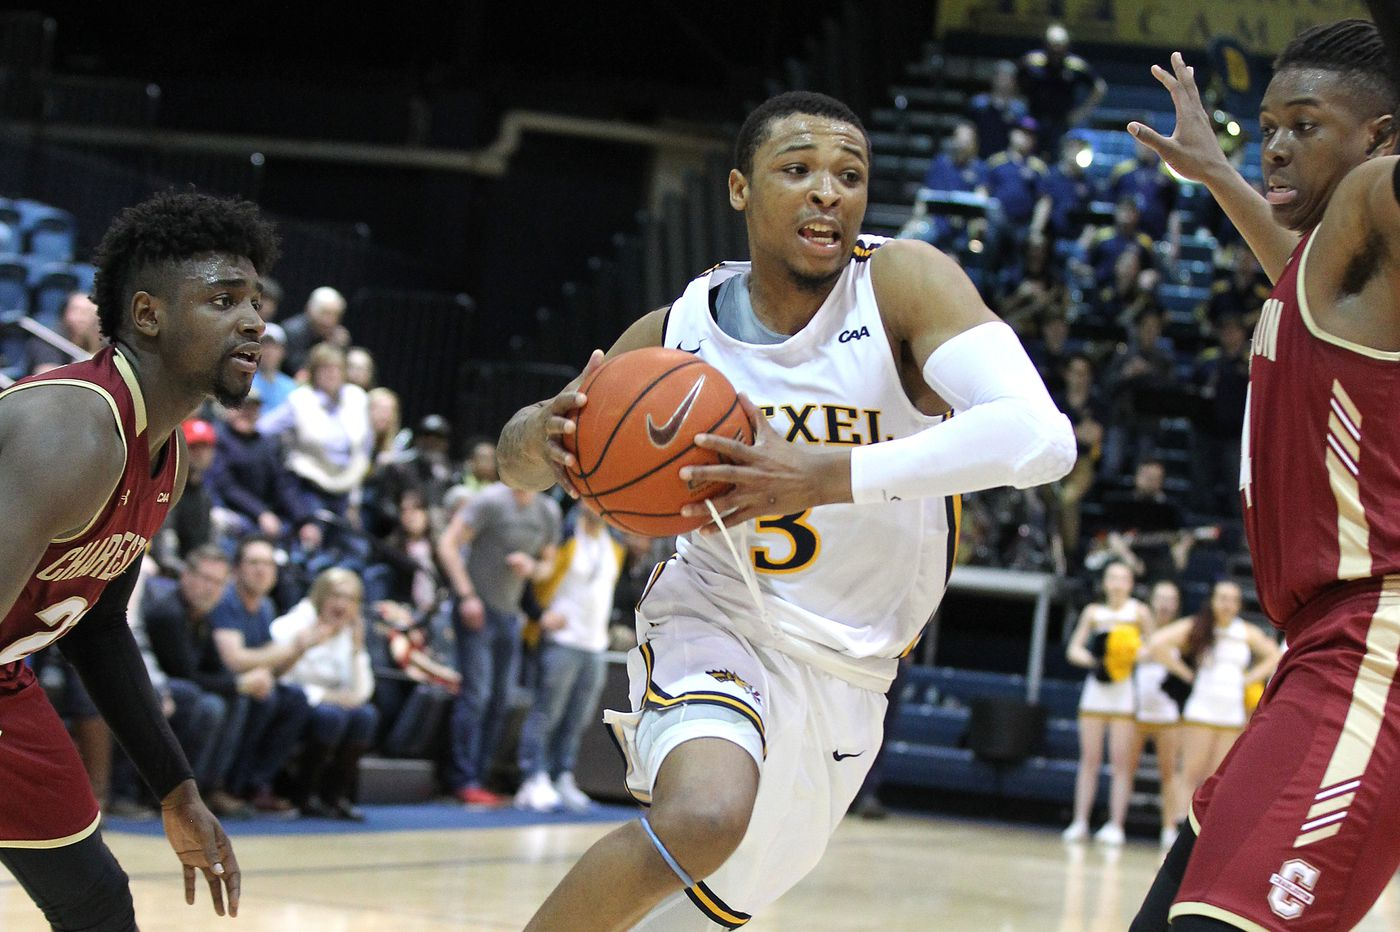 City 6 observations: Drexel's Troy Harper gets to the line; Charlie Brown goes off